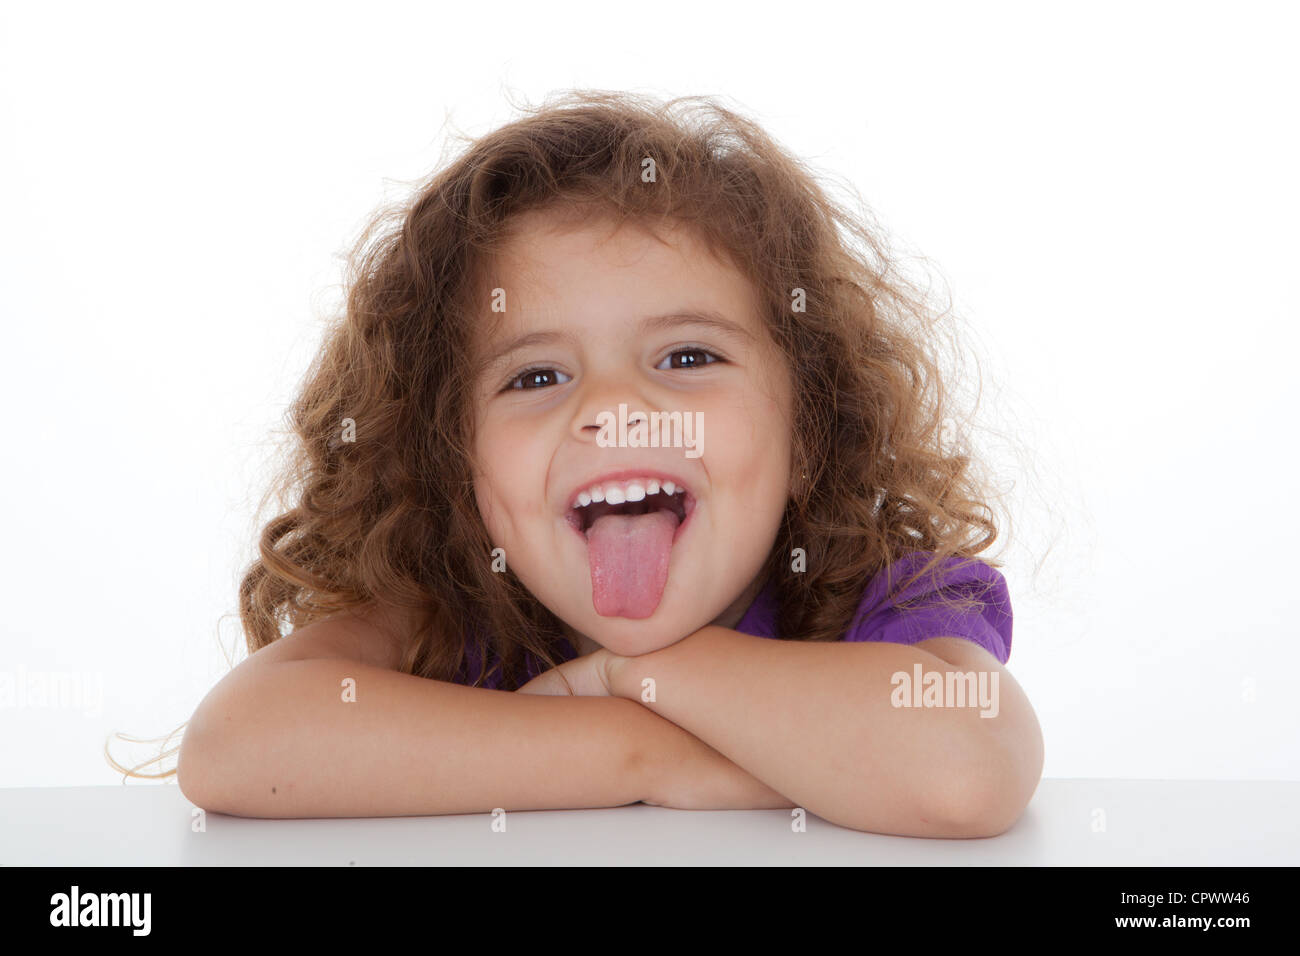 cheeky child sticking thumb out. - Stock Image